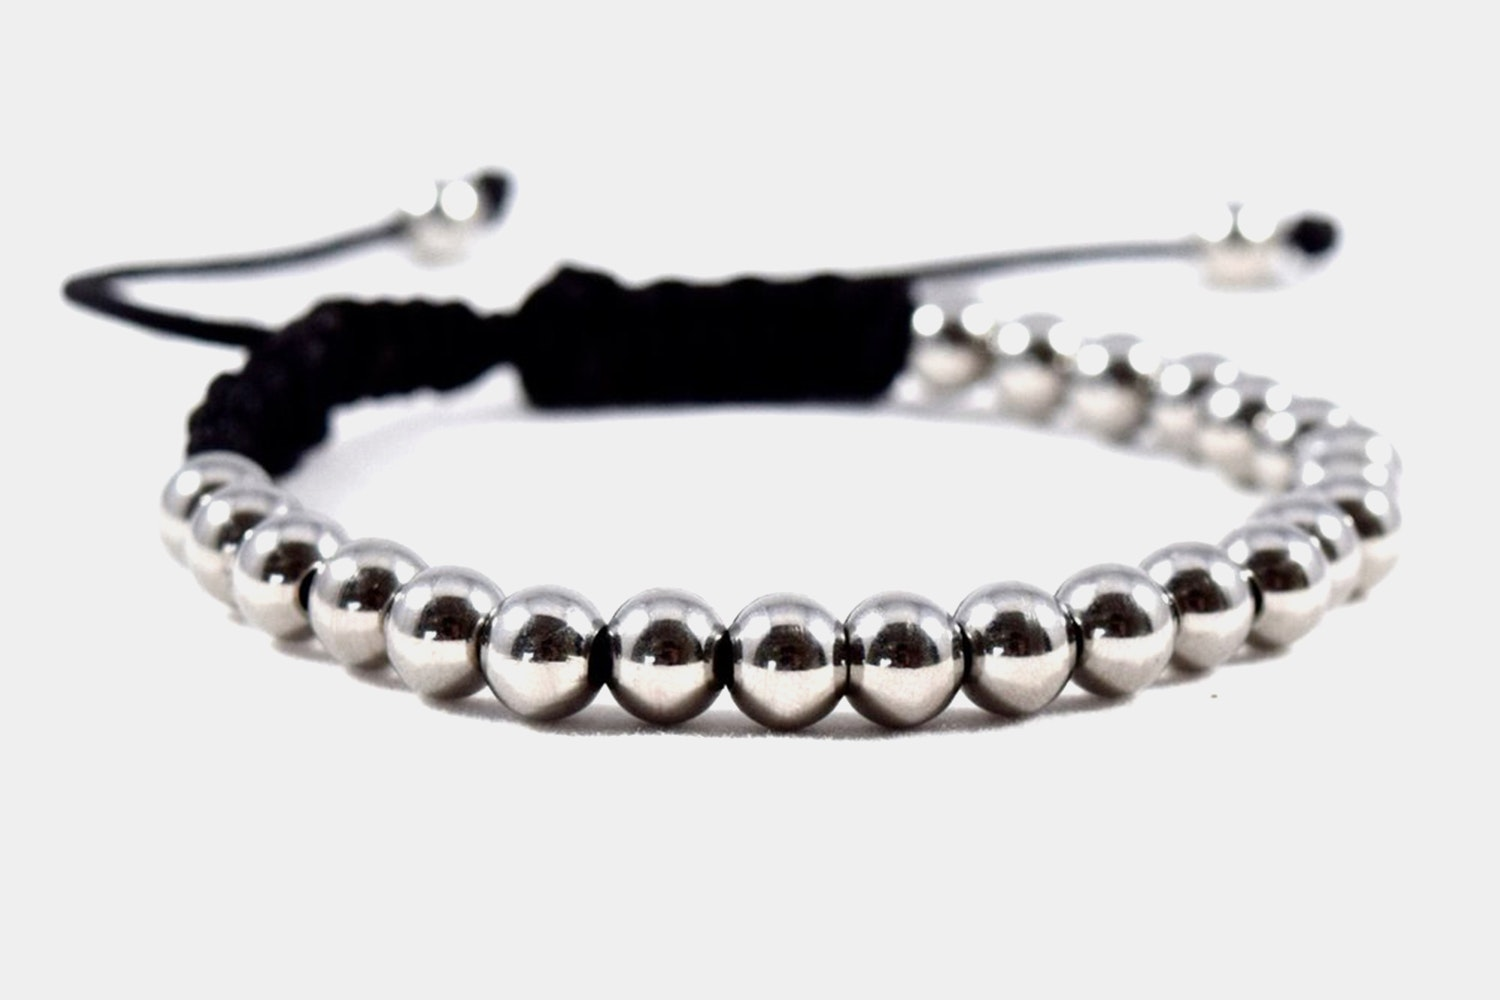 Micro-Bead Macrame Rope - Control Silver - Stainless Steel & Rope (+ $6)